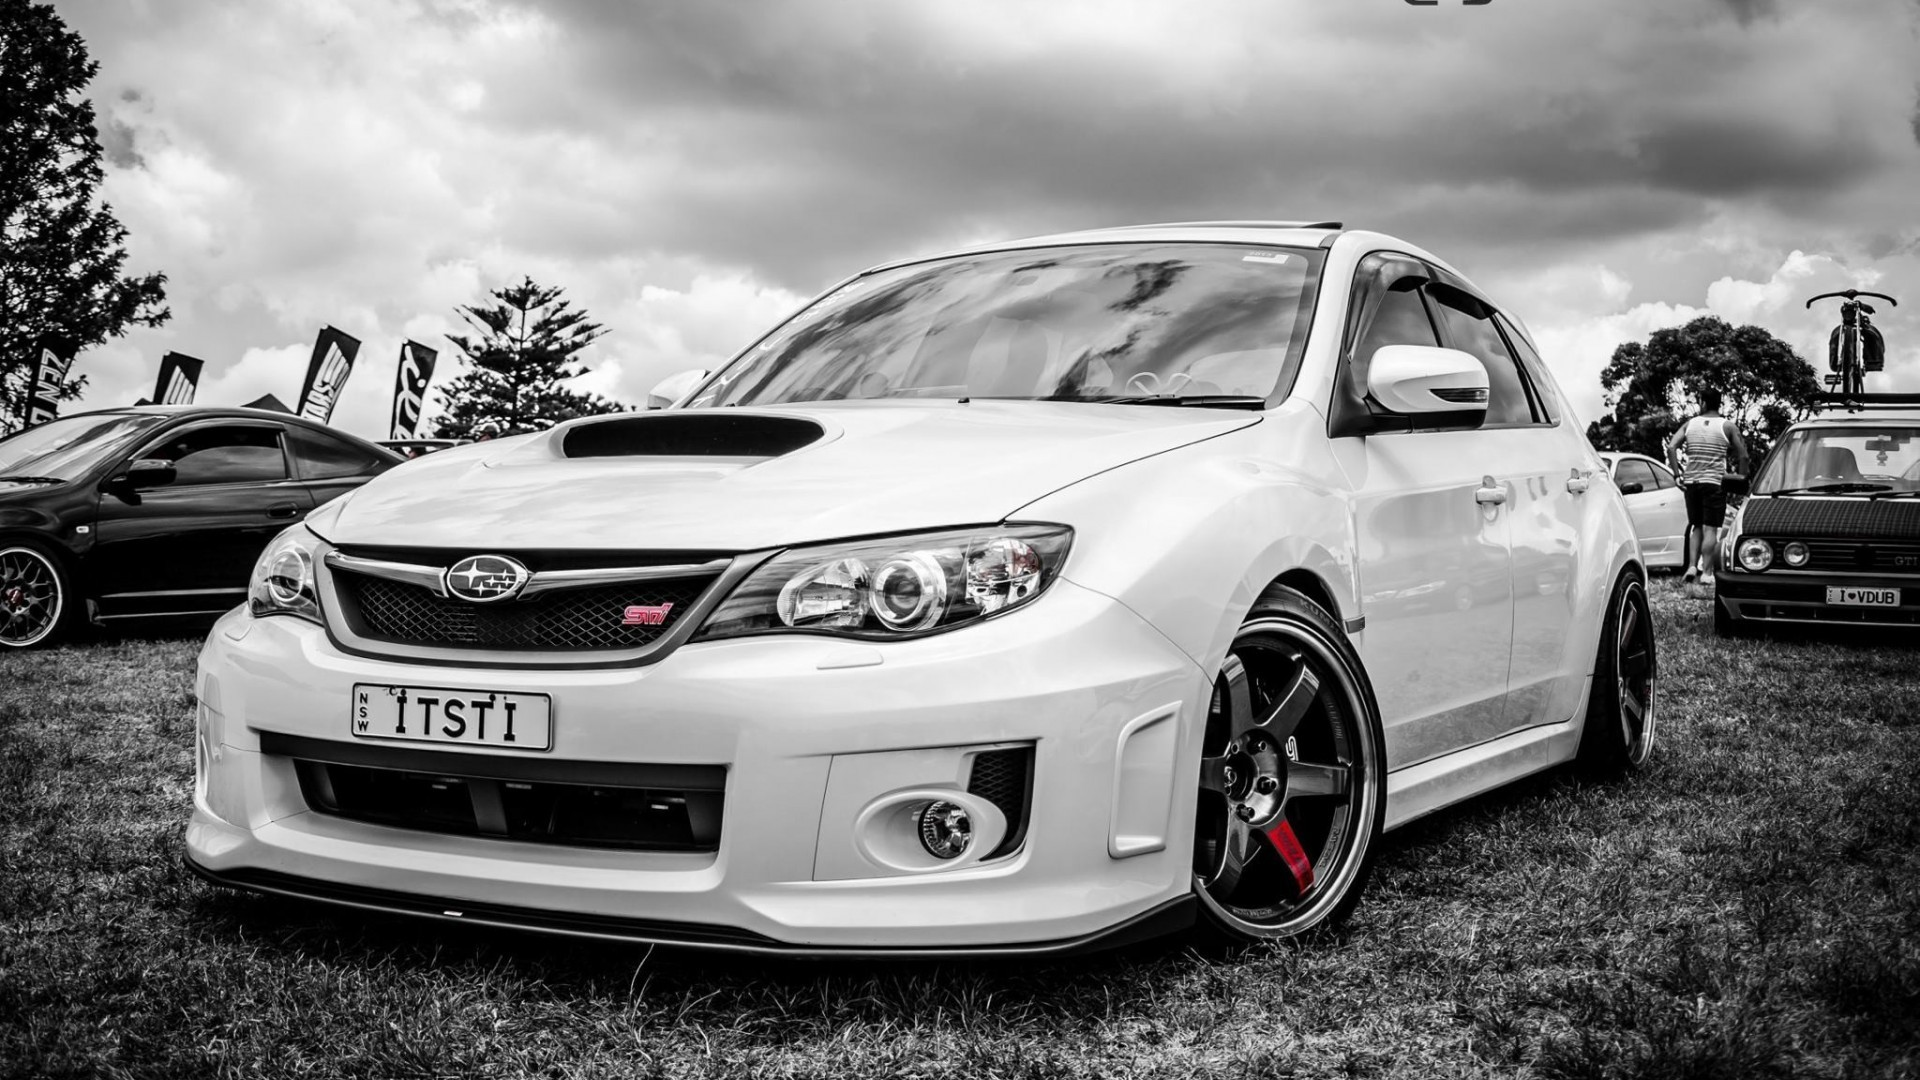 Subaru Impreza sti Car HD Wallpaper 1080p